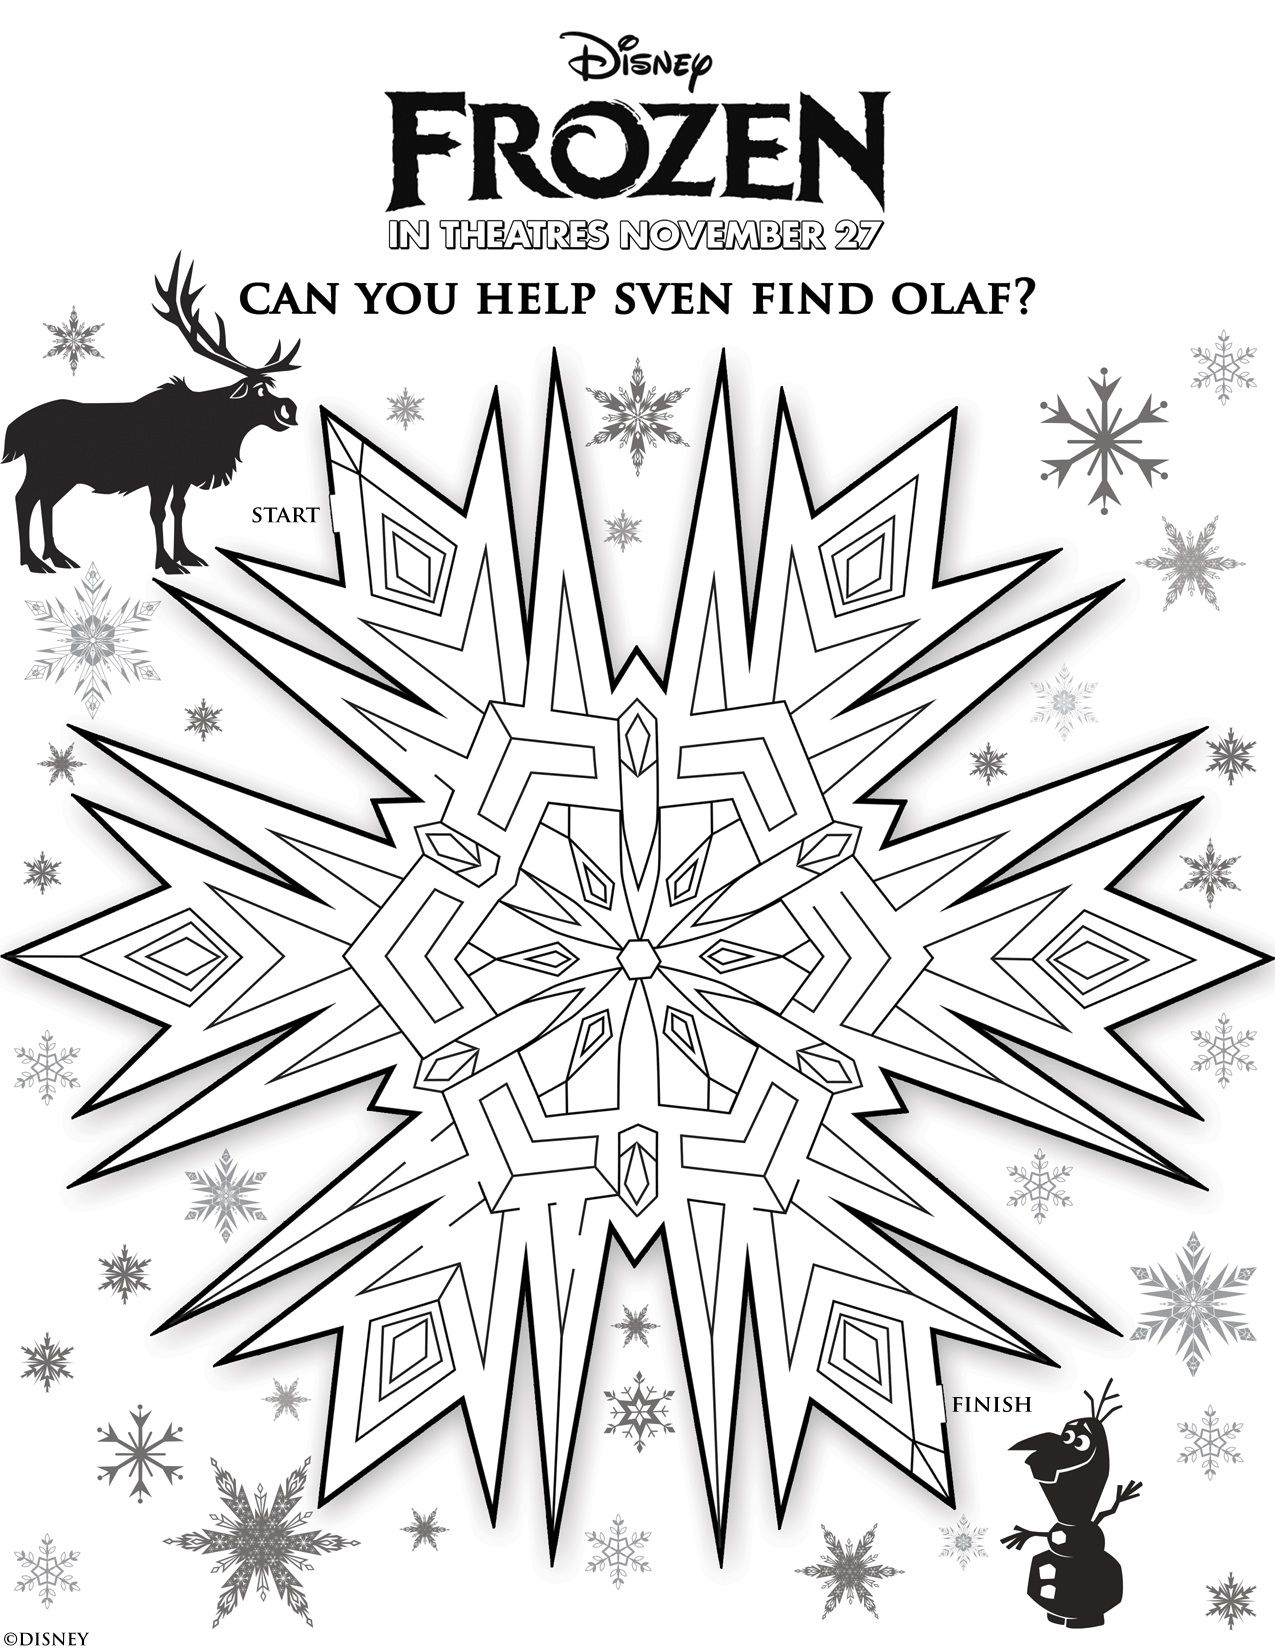 Disneys Frozen Printables Free Downloads For The Kids